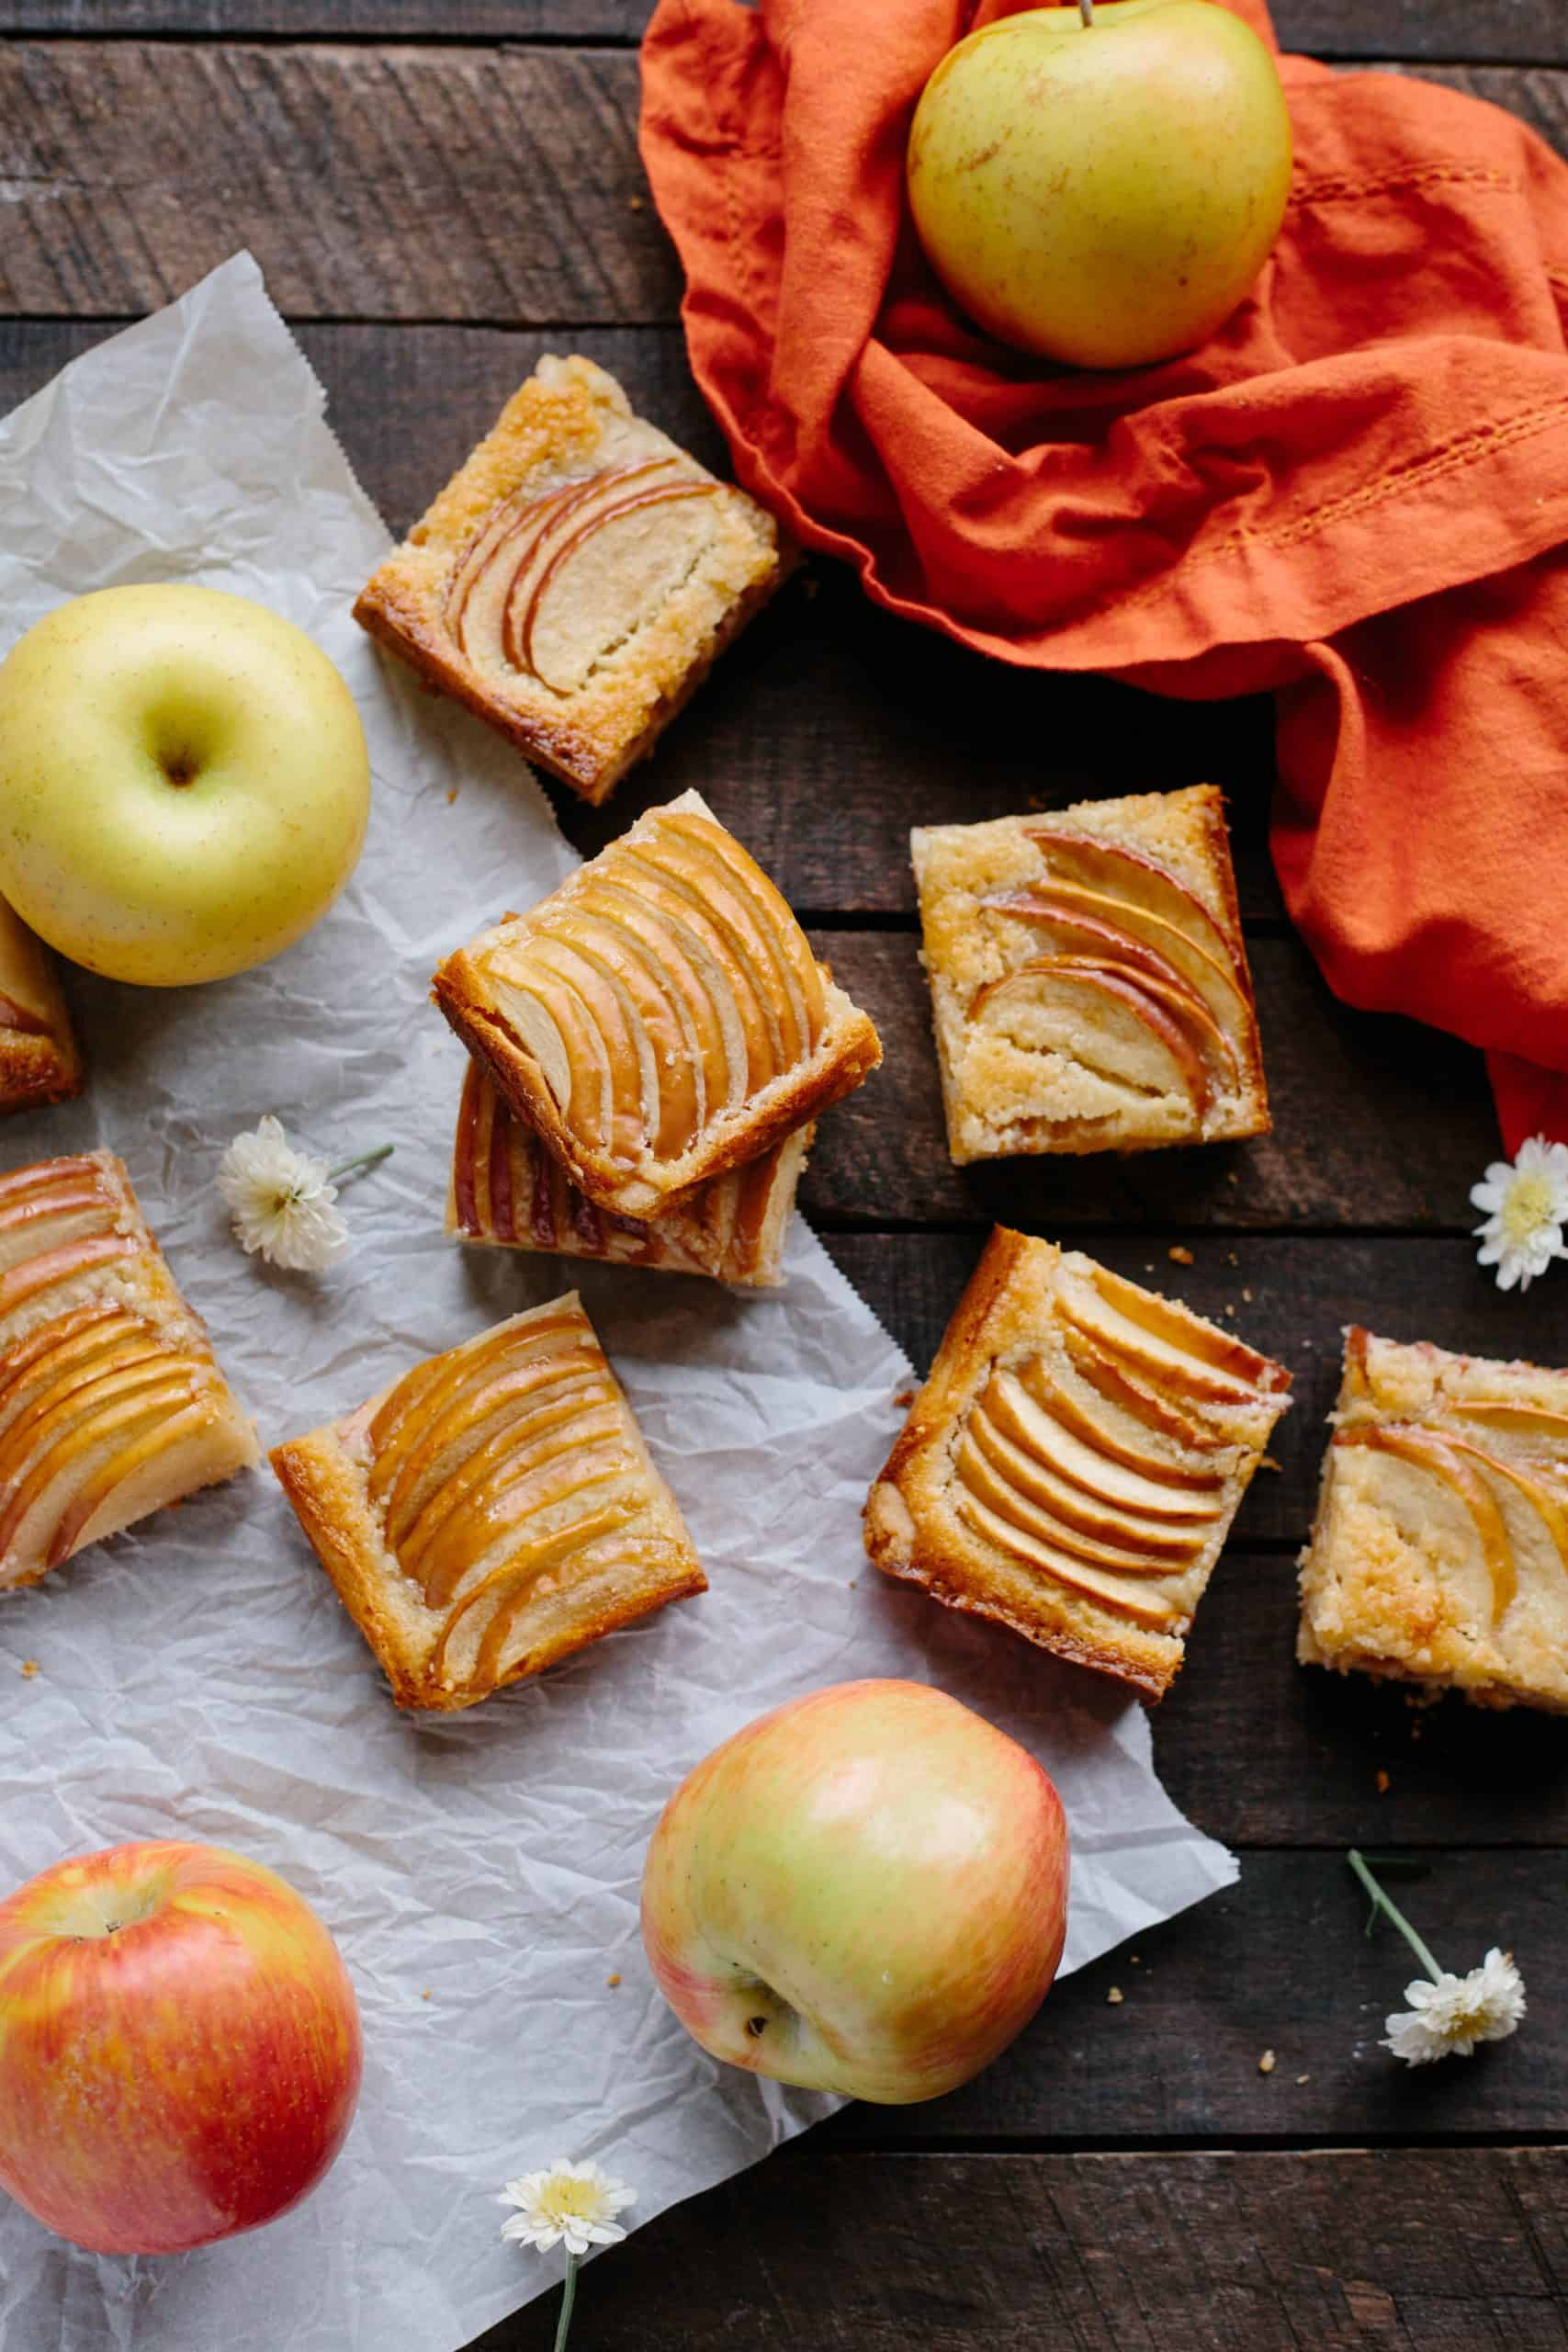 APPLE ALMOND SHORTBREAD BARS | Easy fall dessert recipe! Buttery shortbread crust with almond frangipane and tart apples baked in. #easy #fall #recipe #dessert #bars #cookies #apple #almond #frangipane | ColeyCooks.com